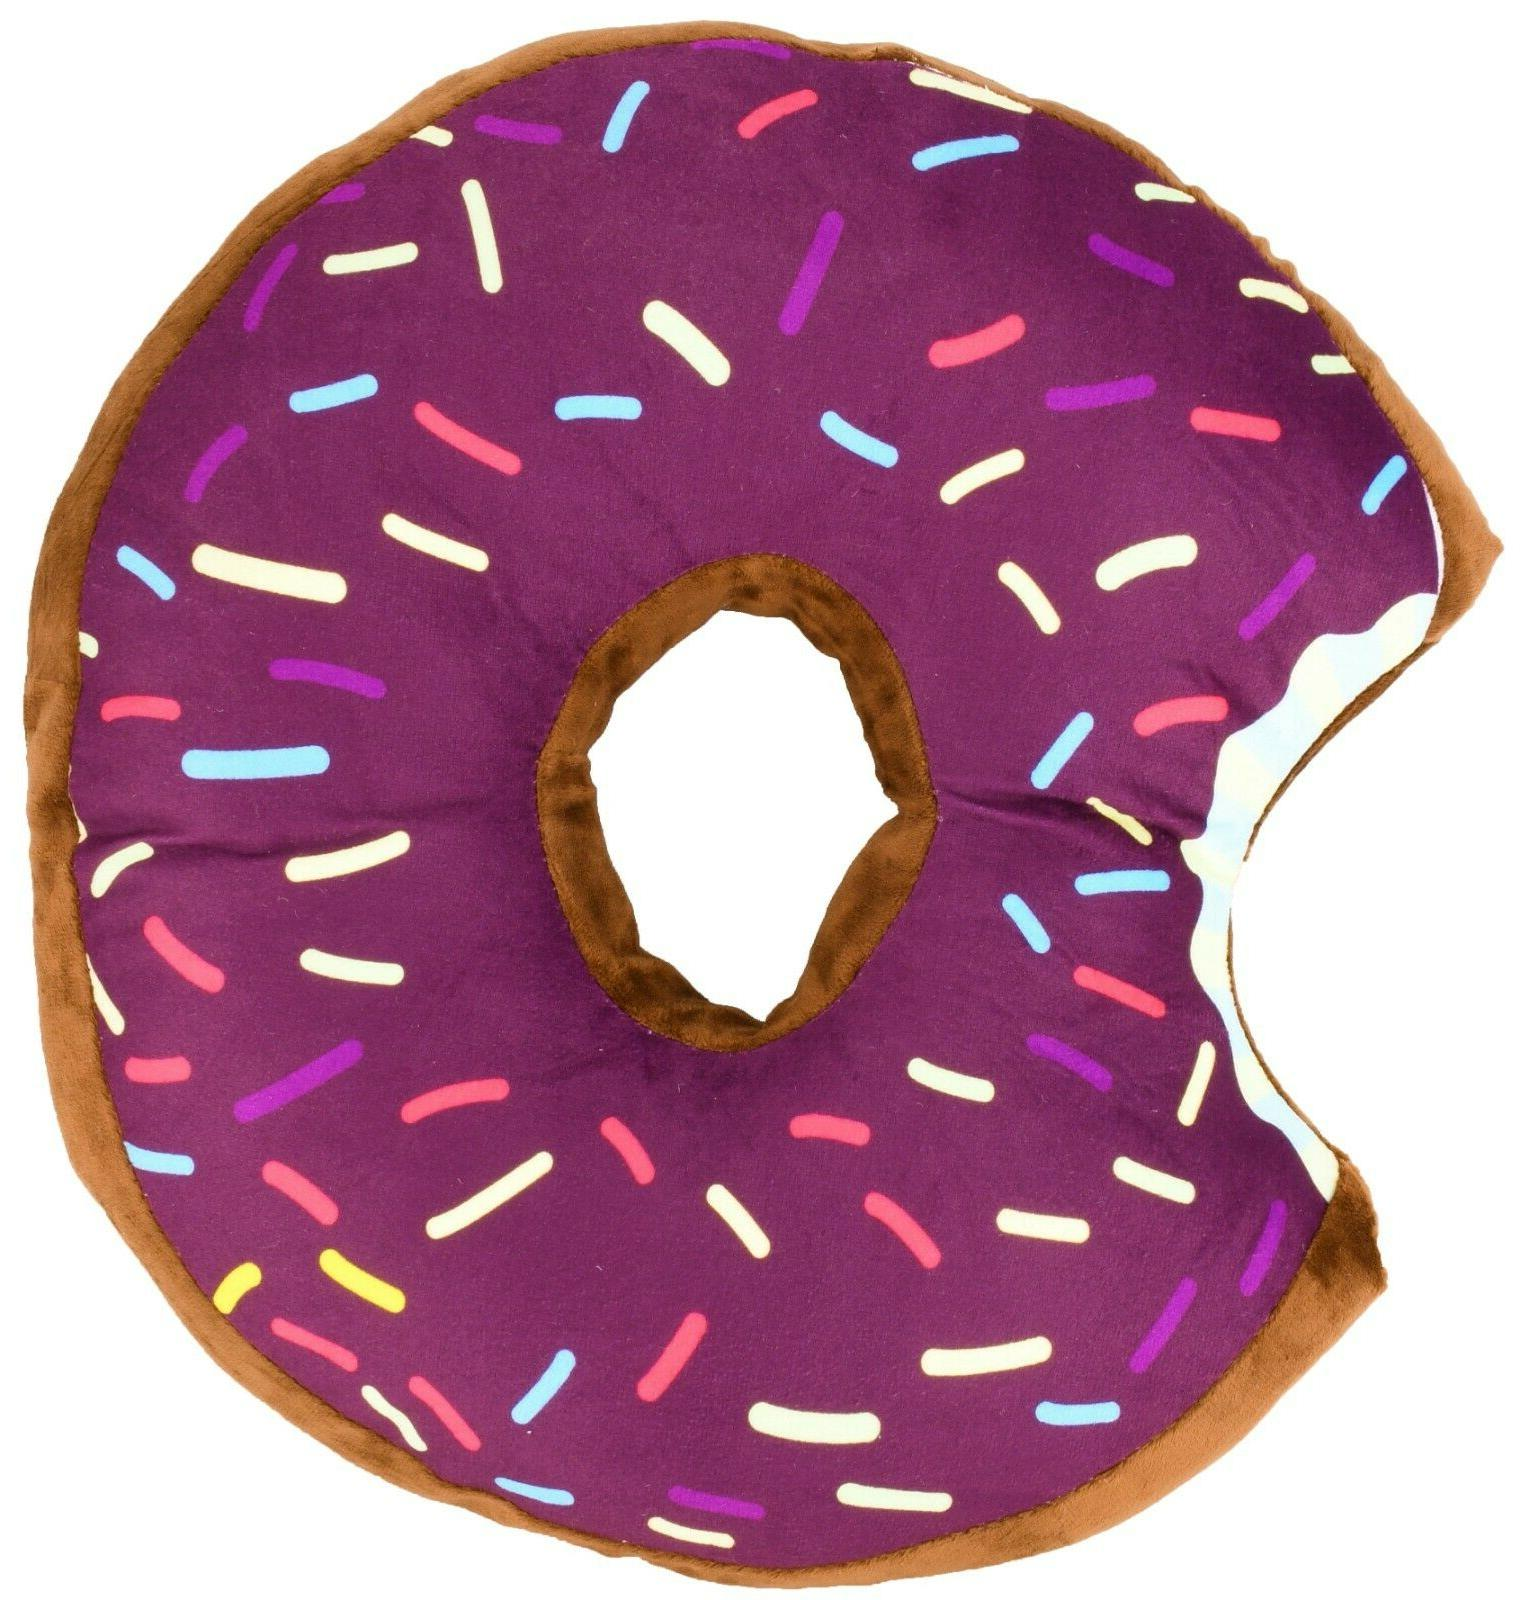 Donut Shaped Plush Sprinkled Comfy Seat Food Pillow Toy